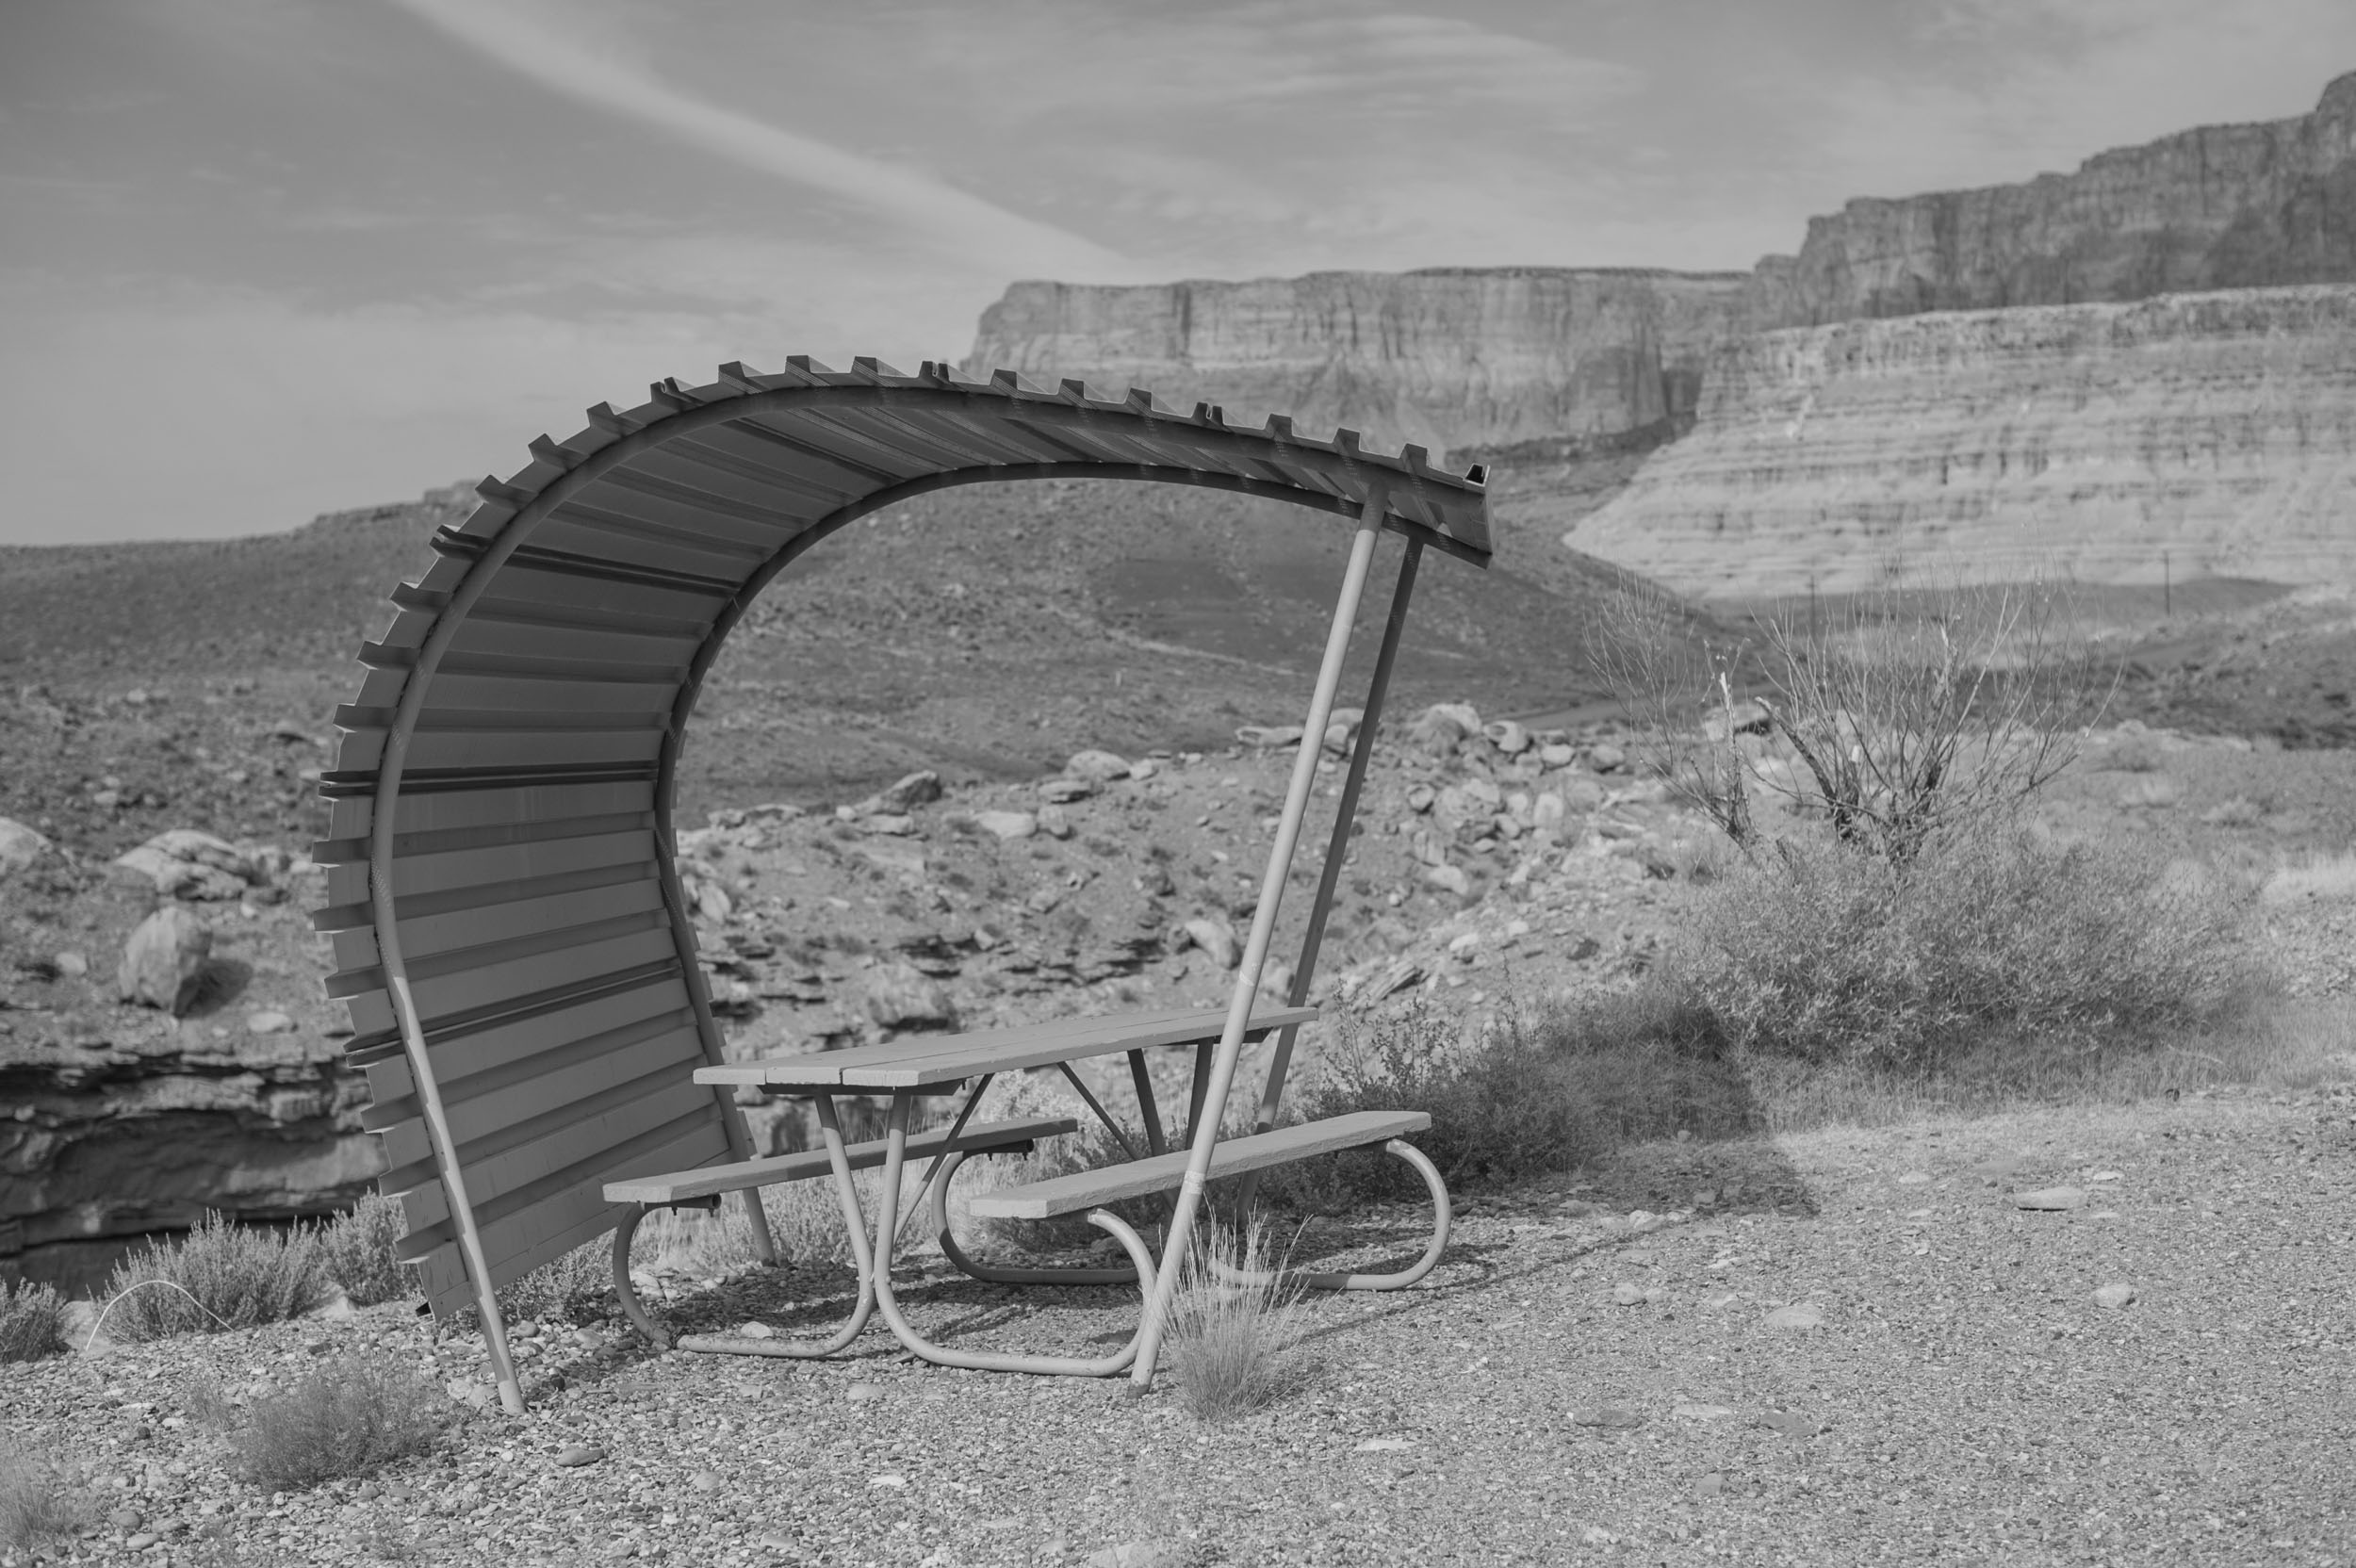 Lee's Ferry Campground in Marble Canyon, Arizona.